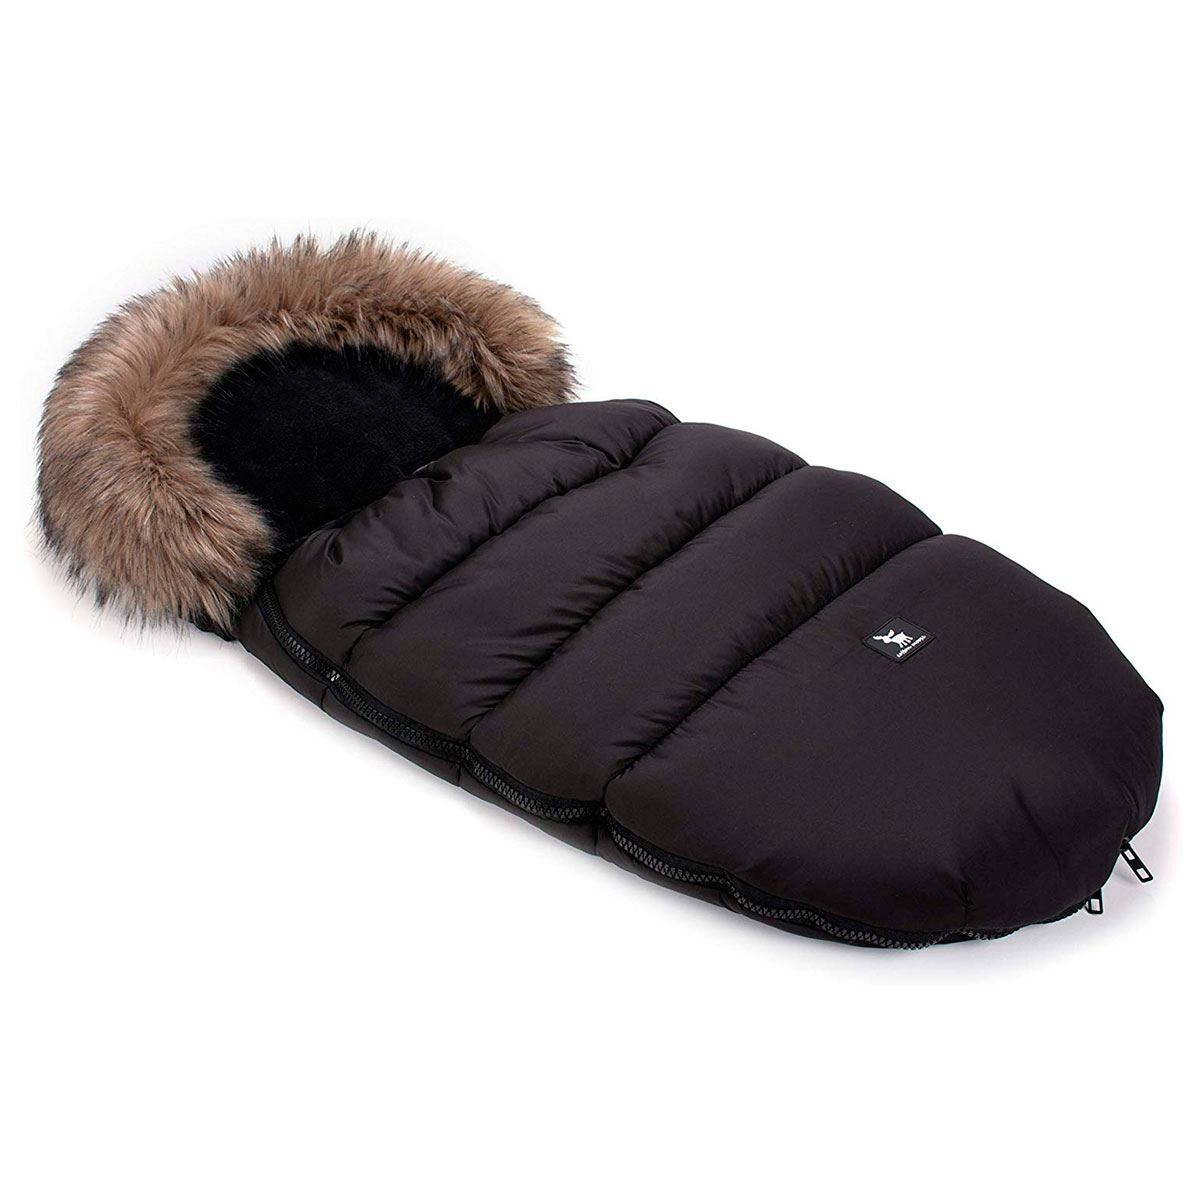 Saco Silla moose Black Cotton Moose